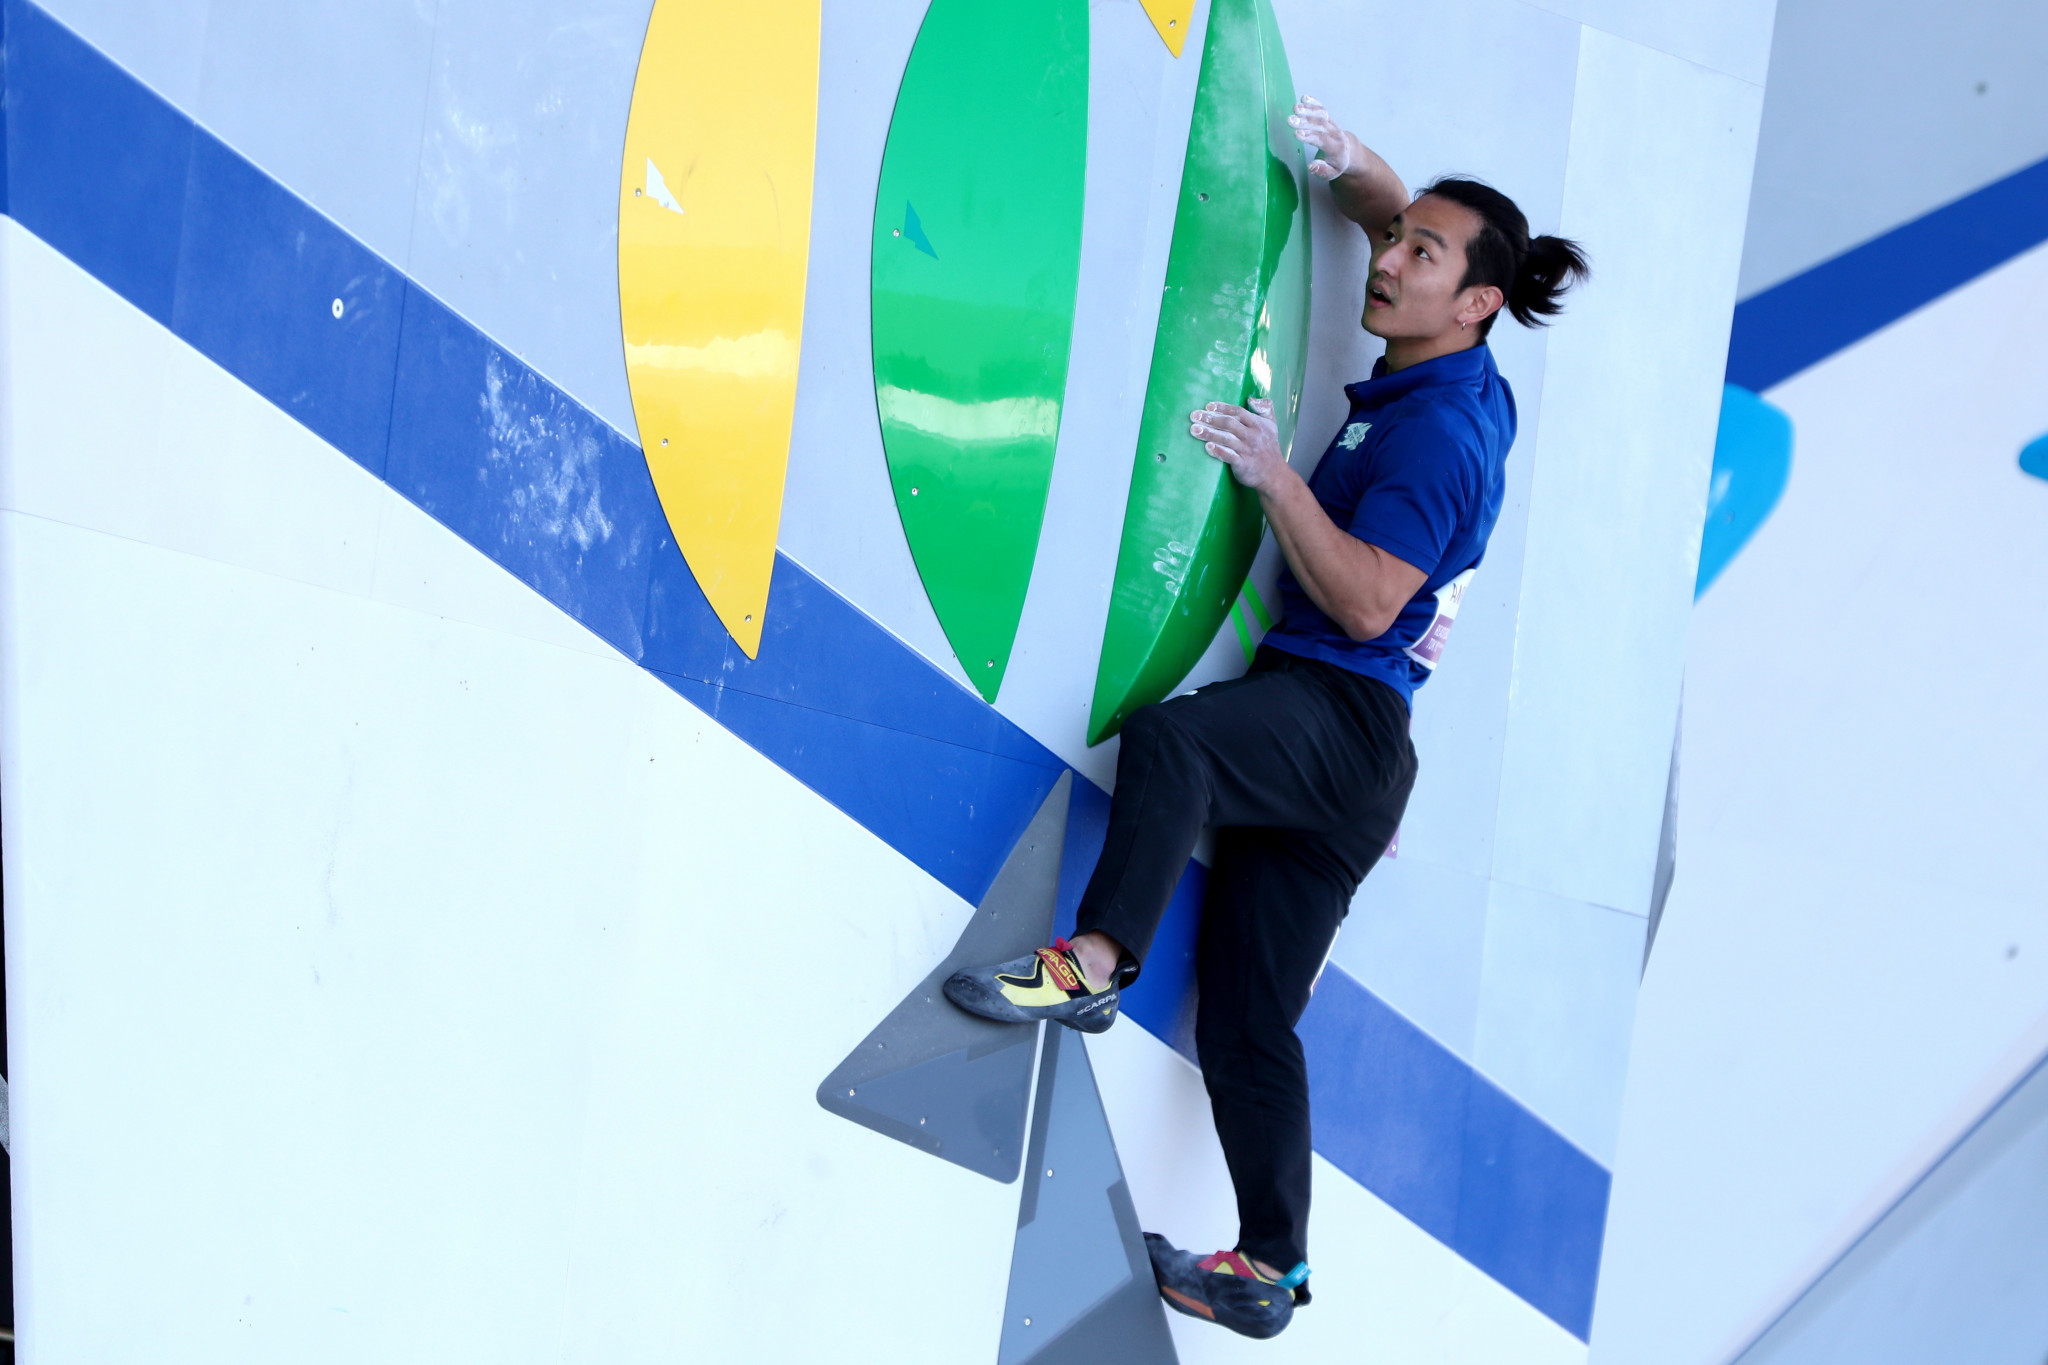 More than 50 athletes set to take part in first ever IFSC Speed Knockout event